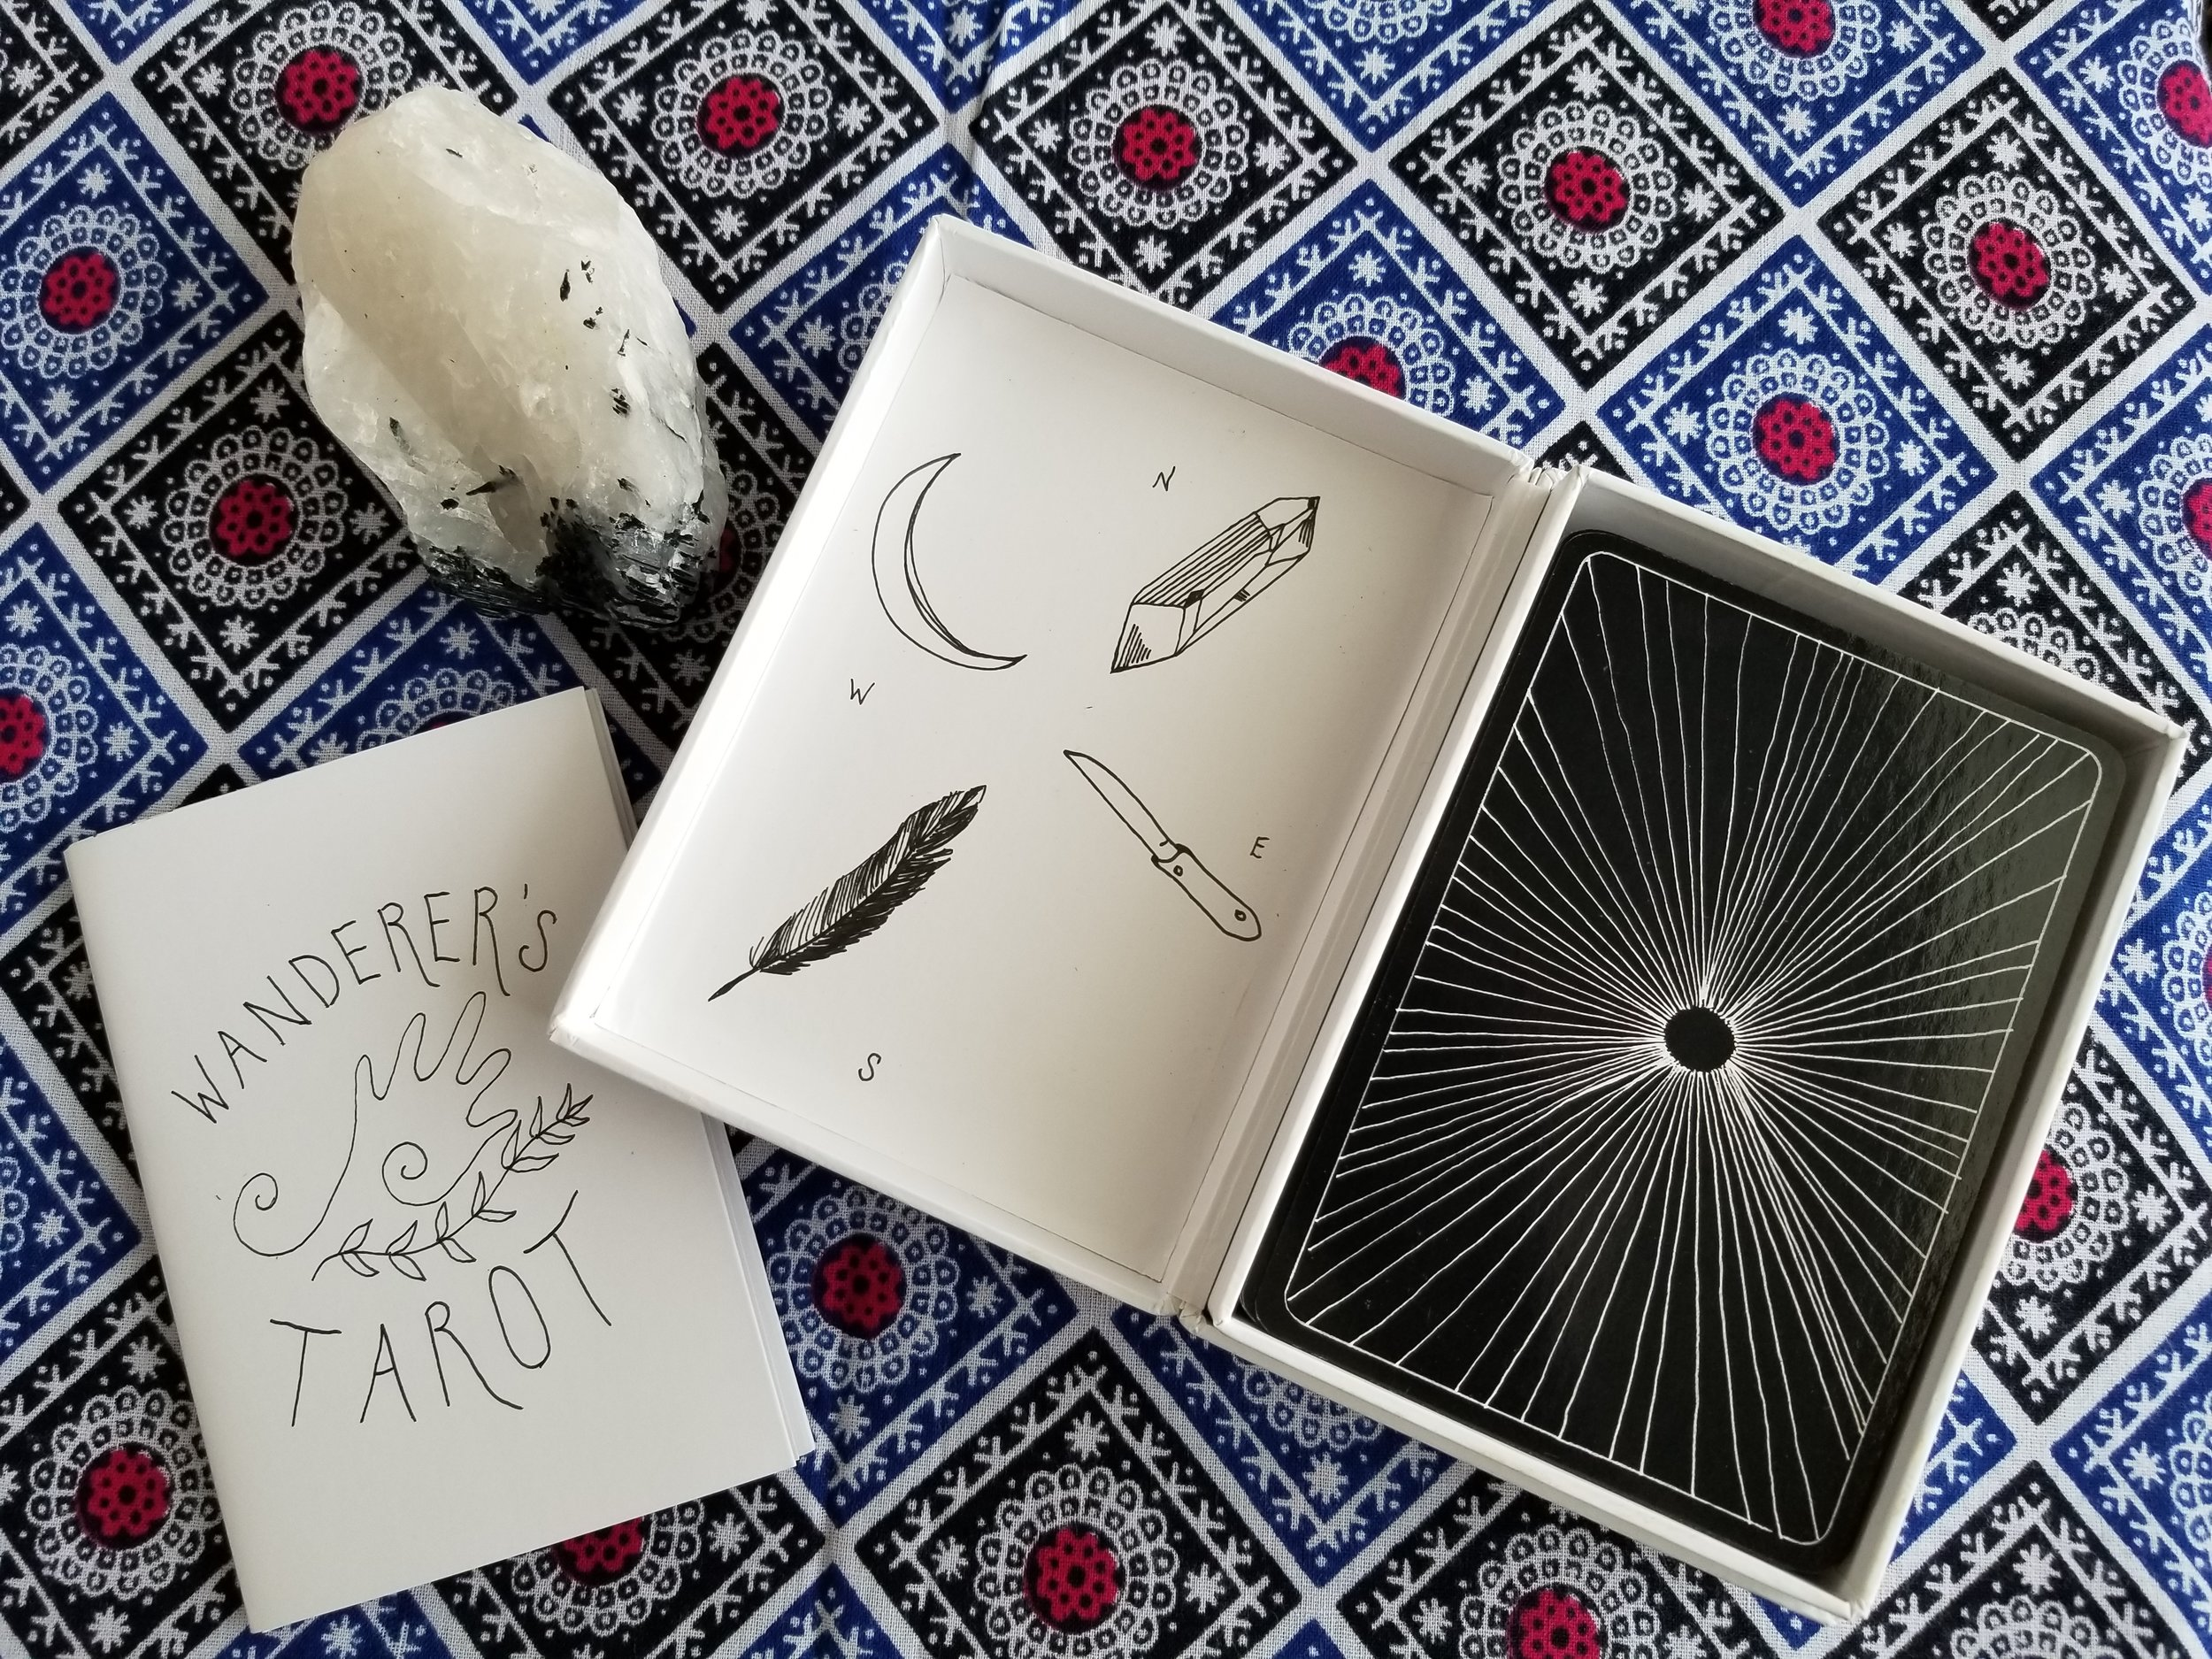 Box & LWB from the Solar Wanderer's Tarot